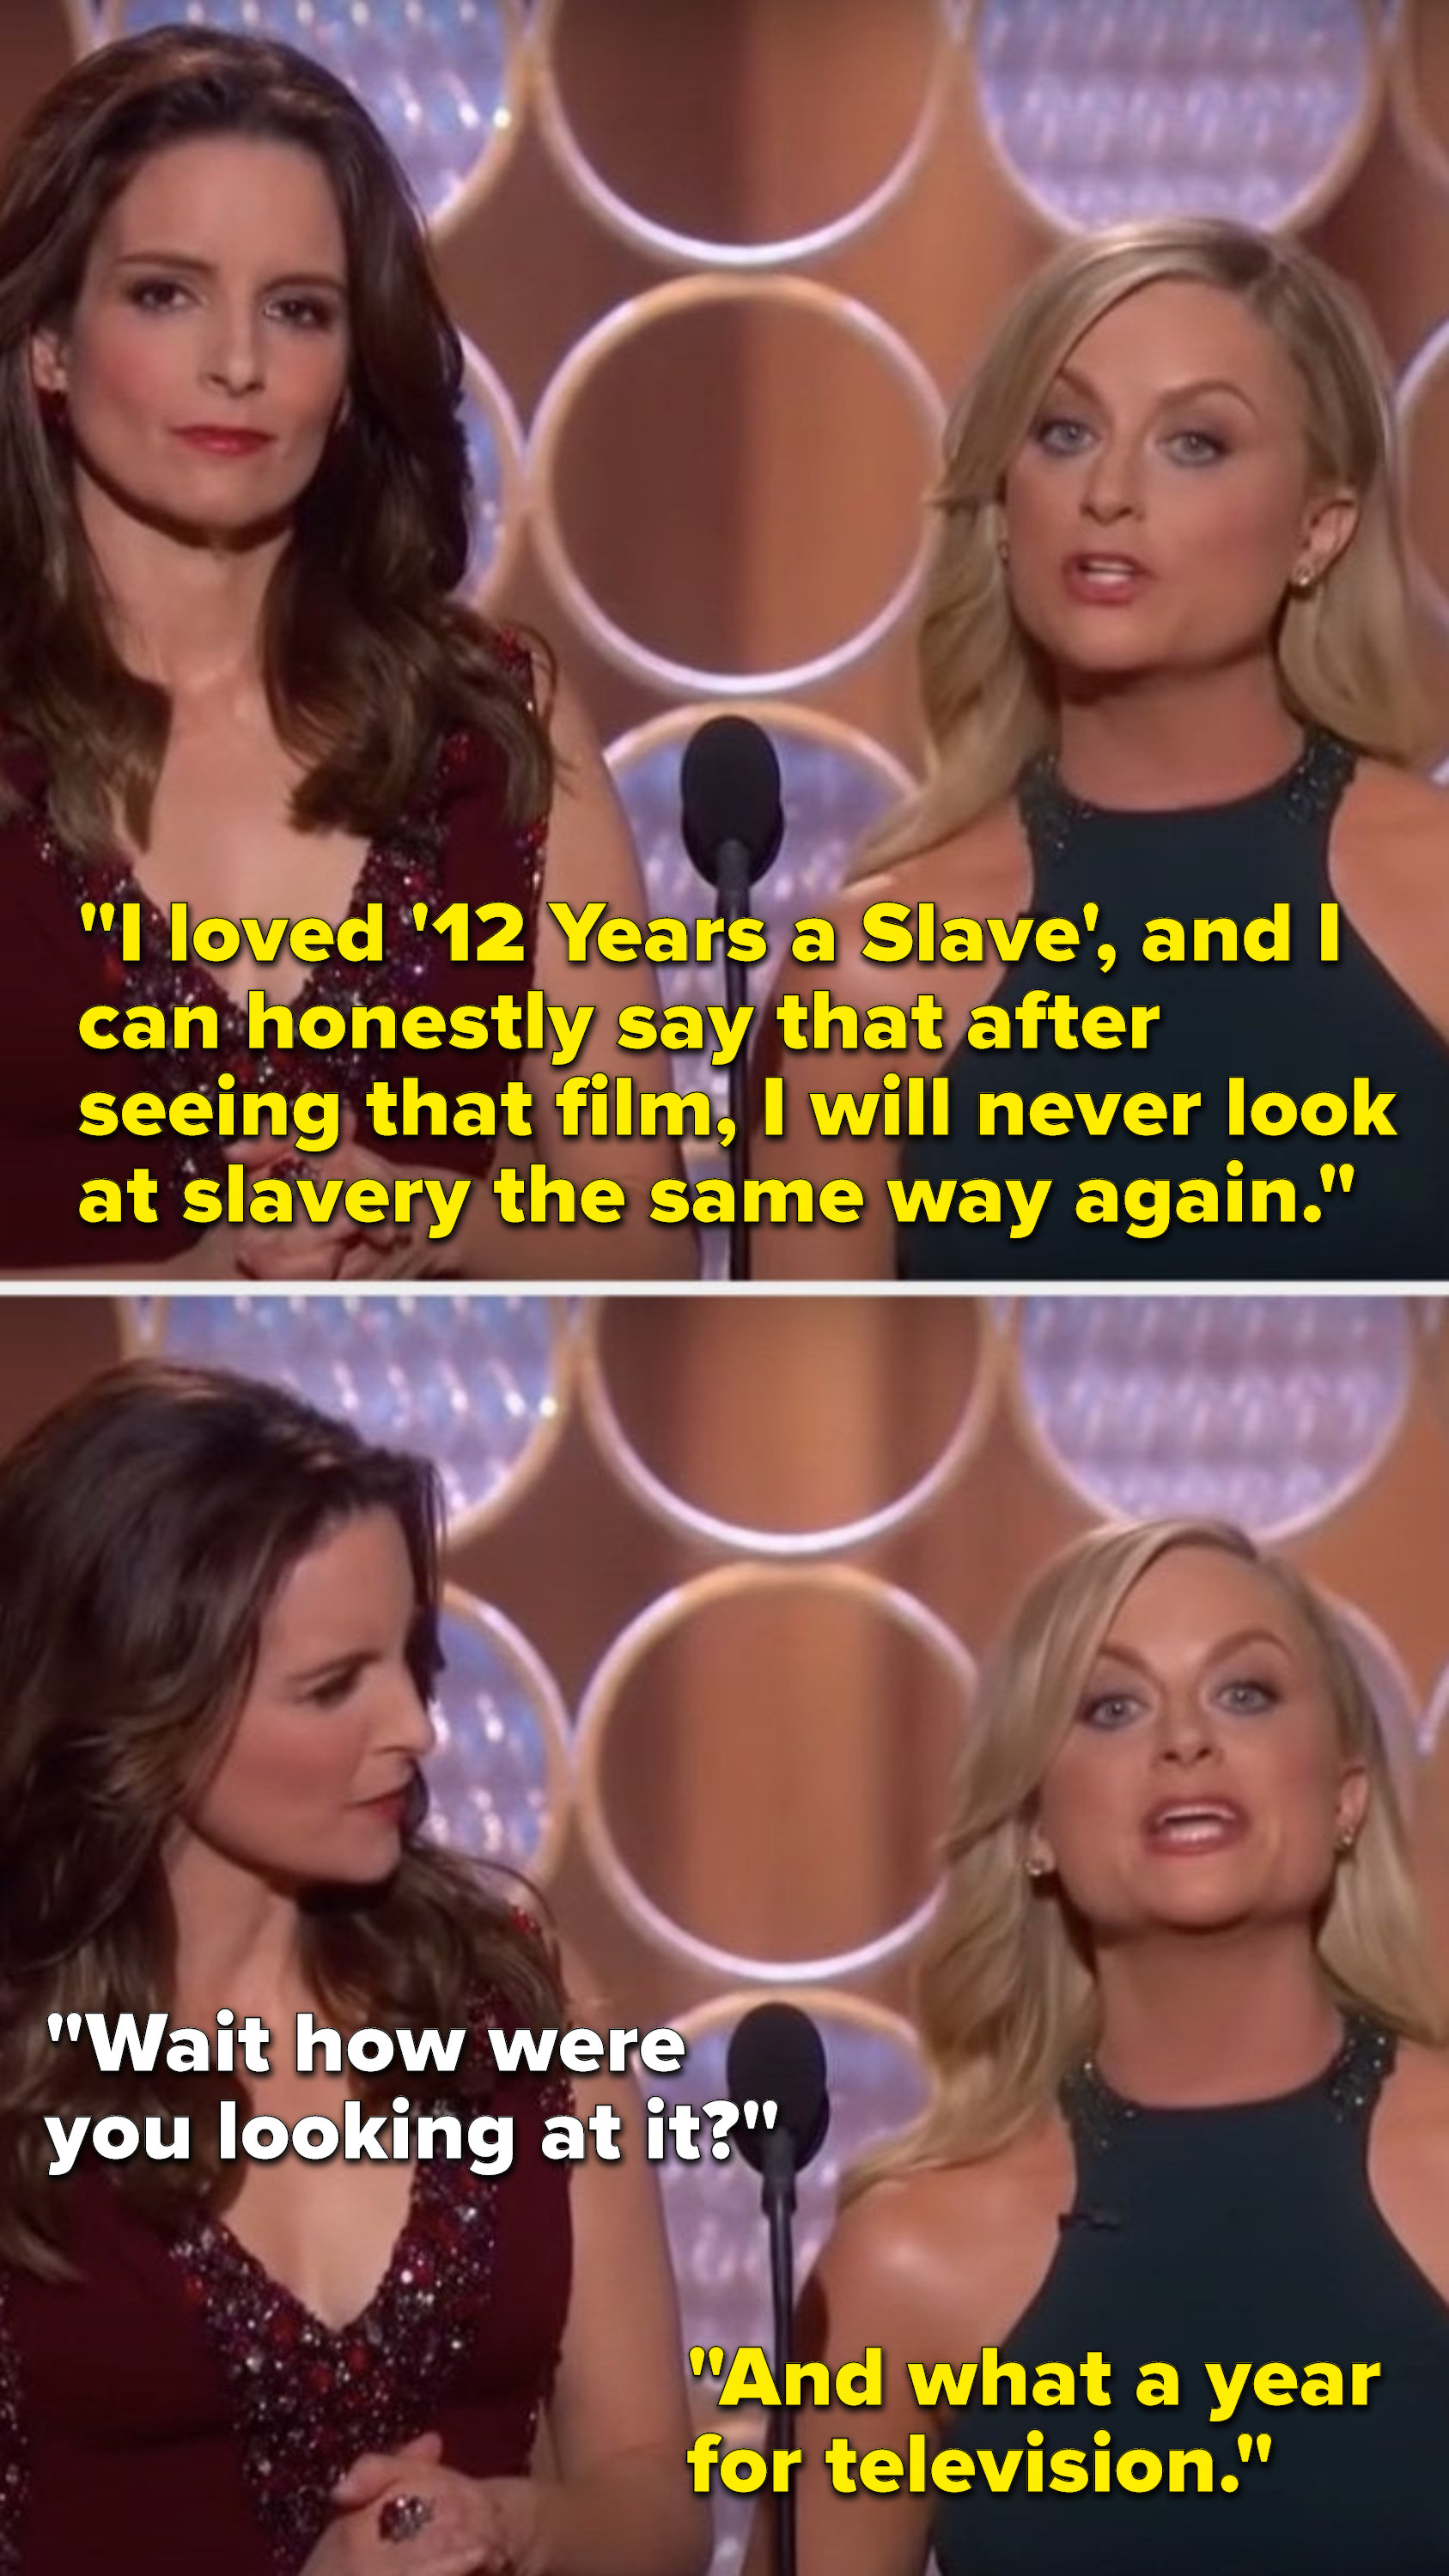 """Poehler says, """"I loved '12 Years a Slave', and I can honestly say that after seeing that film, I will never look at slavery the same way again,"""" Fey says, """"Wait how were you looking at it,"""" and Poehler says, """"And what a year for television"""""""